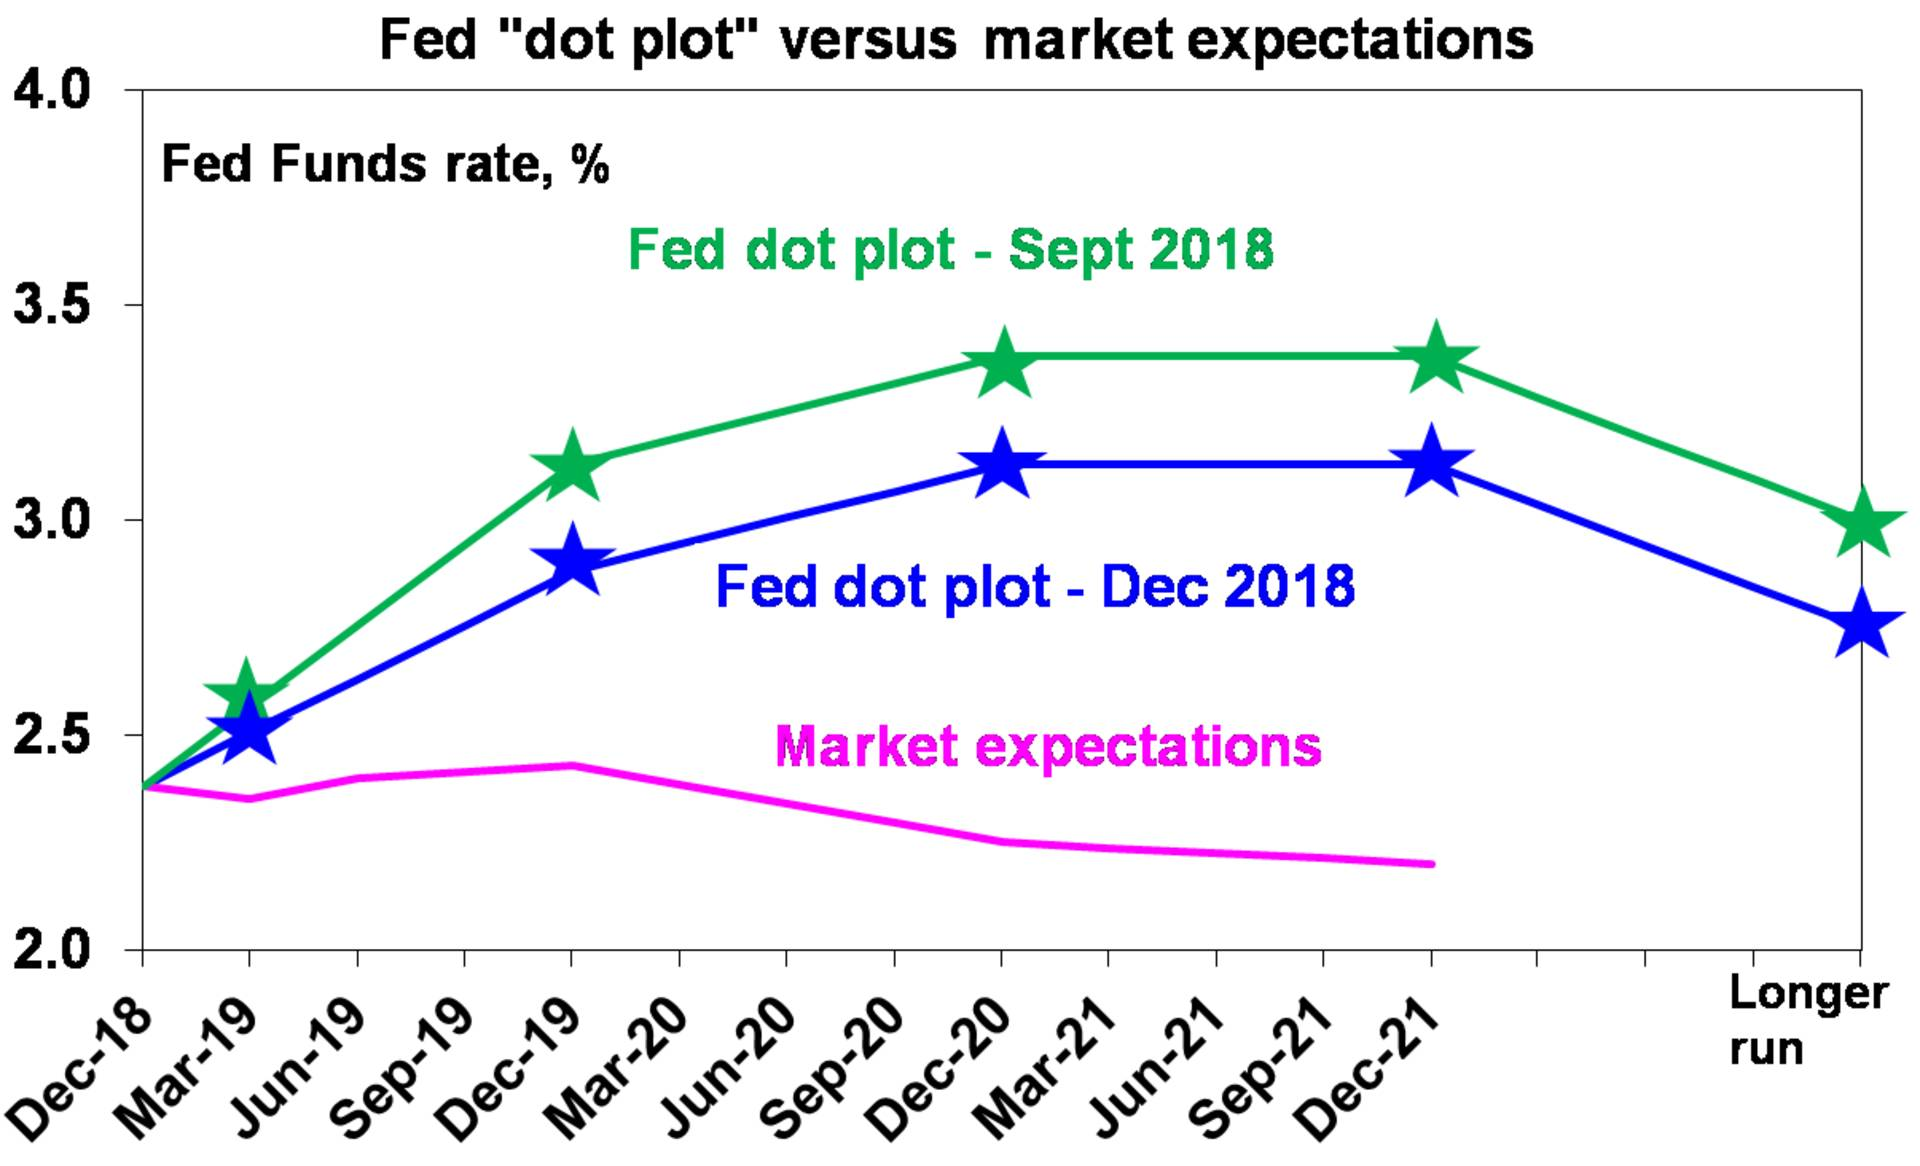 Fed 'pot plot' versus market expectations